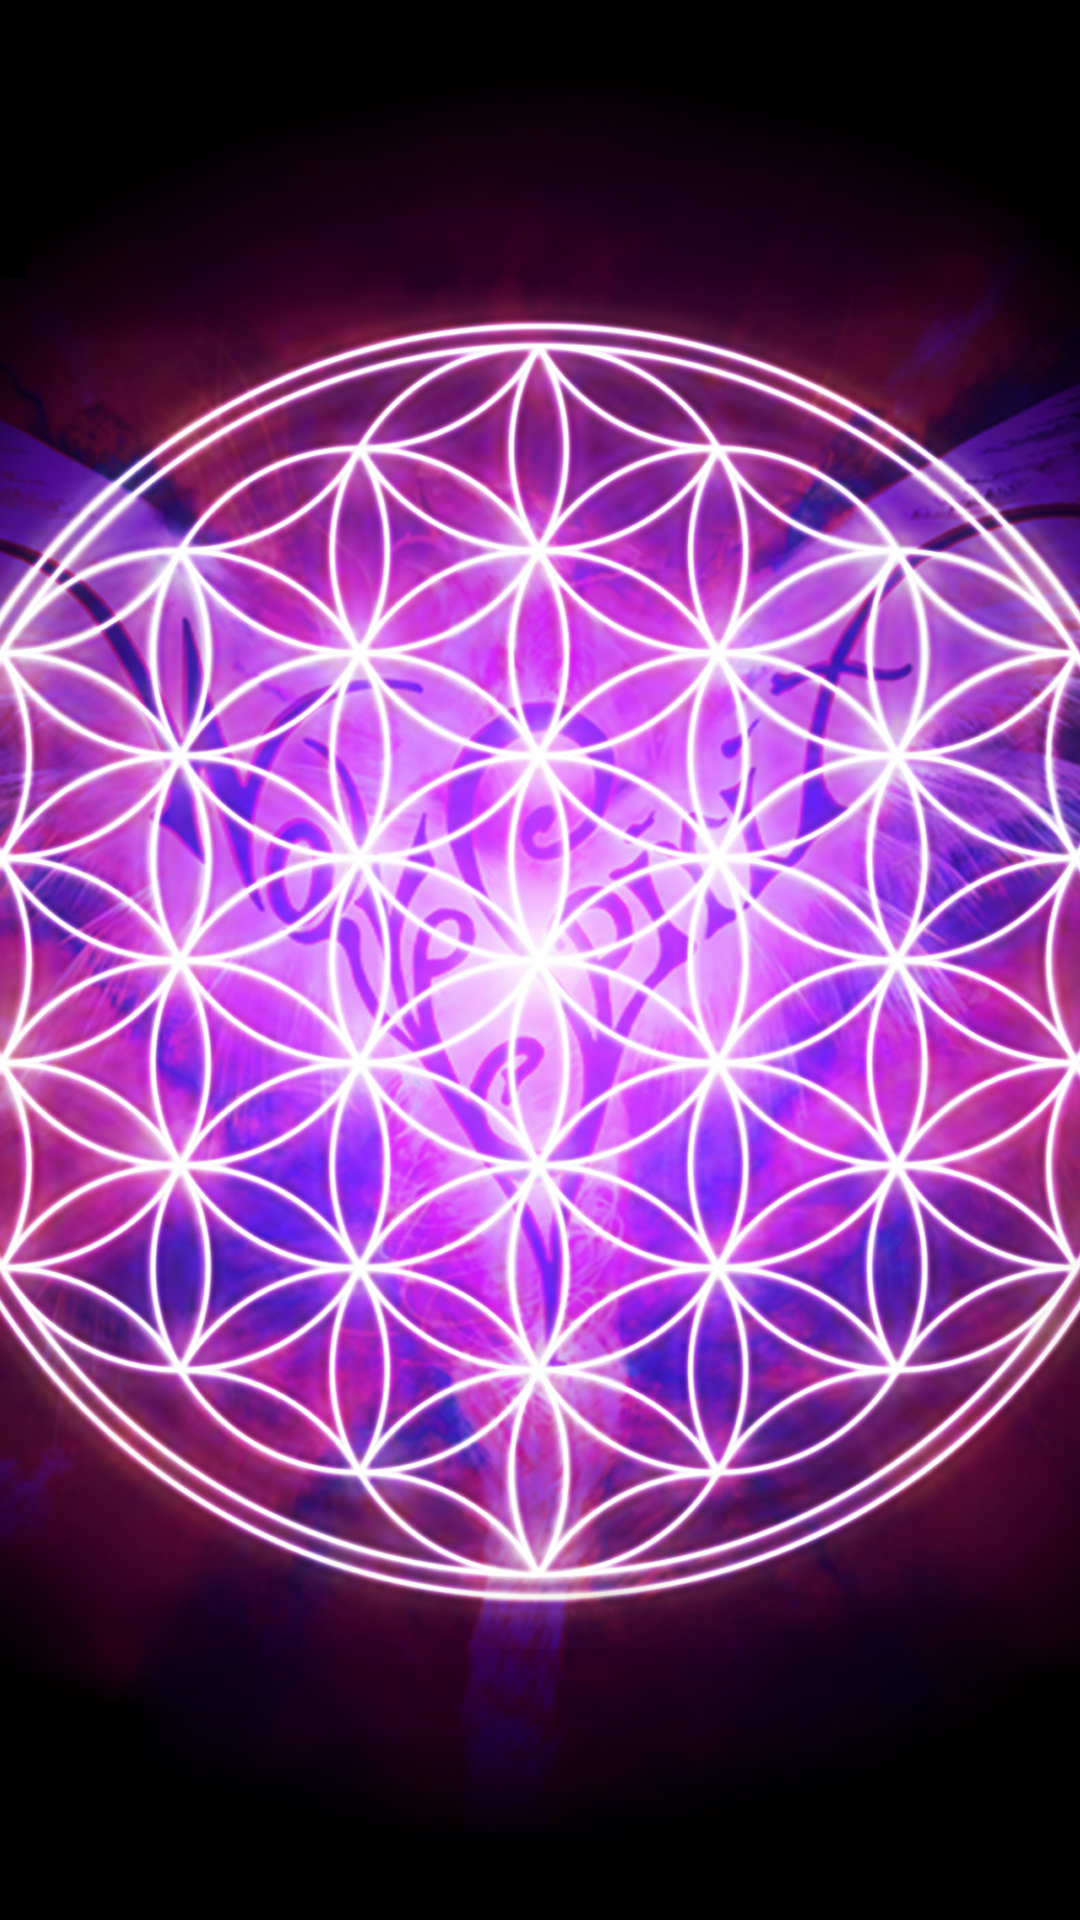 Download Flower Of Life Wallpaper Flower Of Life Iphone 2000x2000